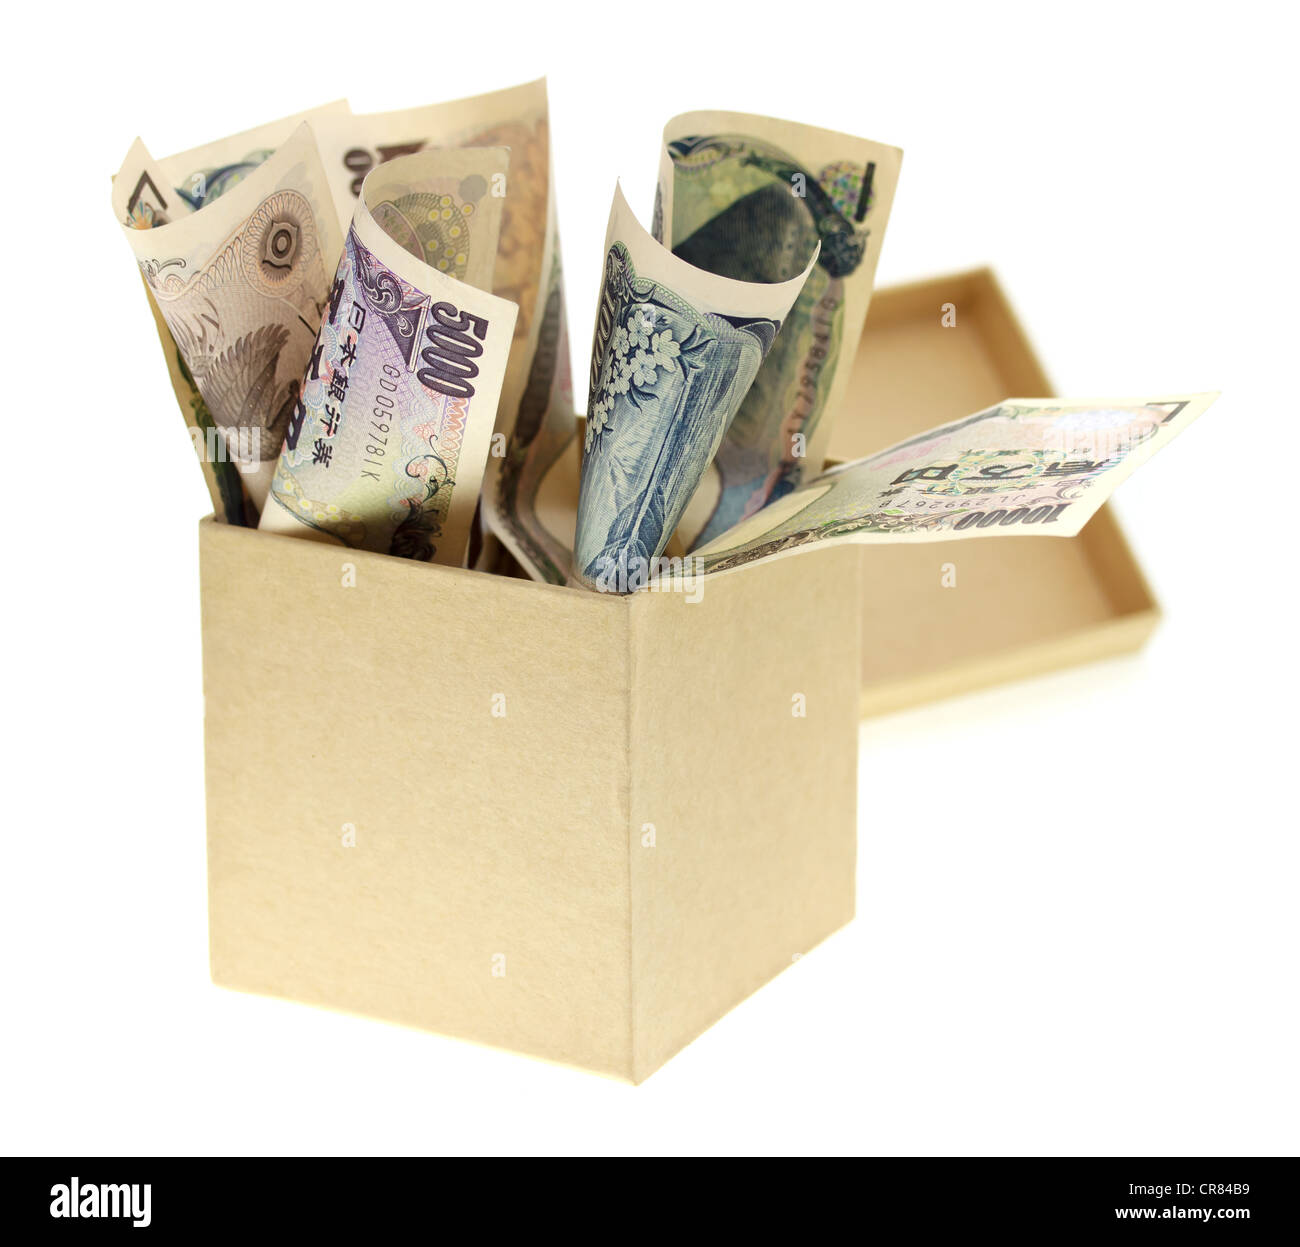 Box Overflowing with Japanese Yen - Stock Image